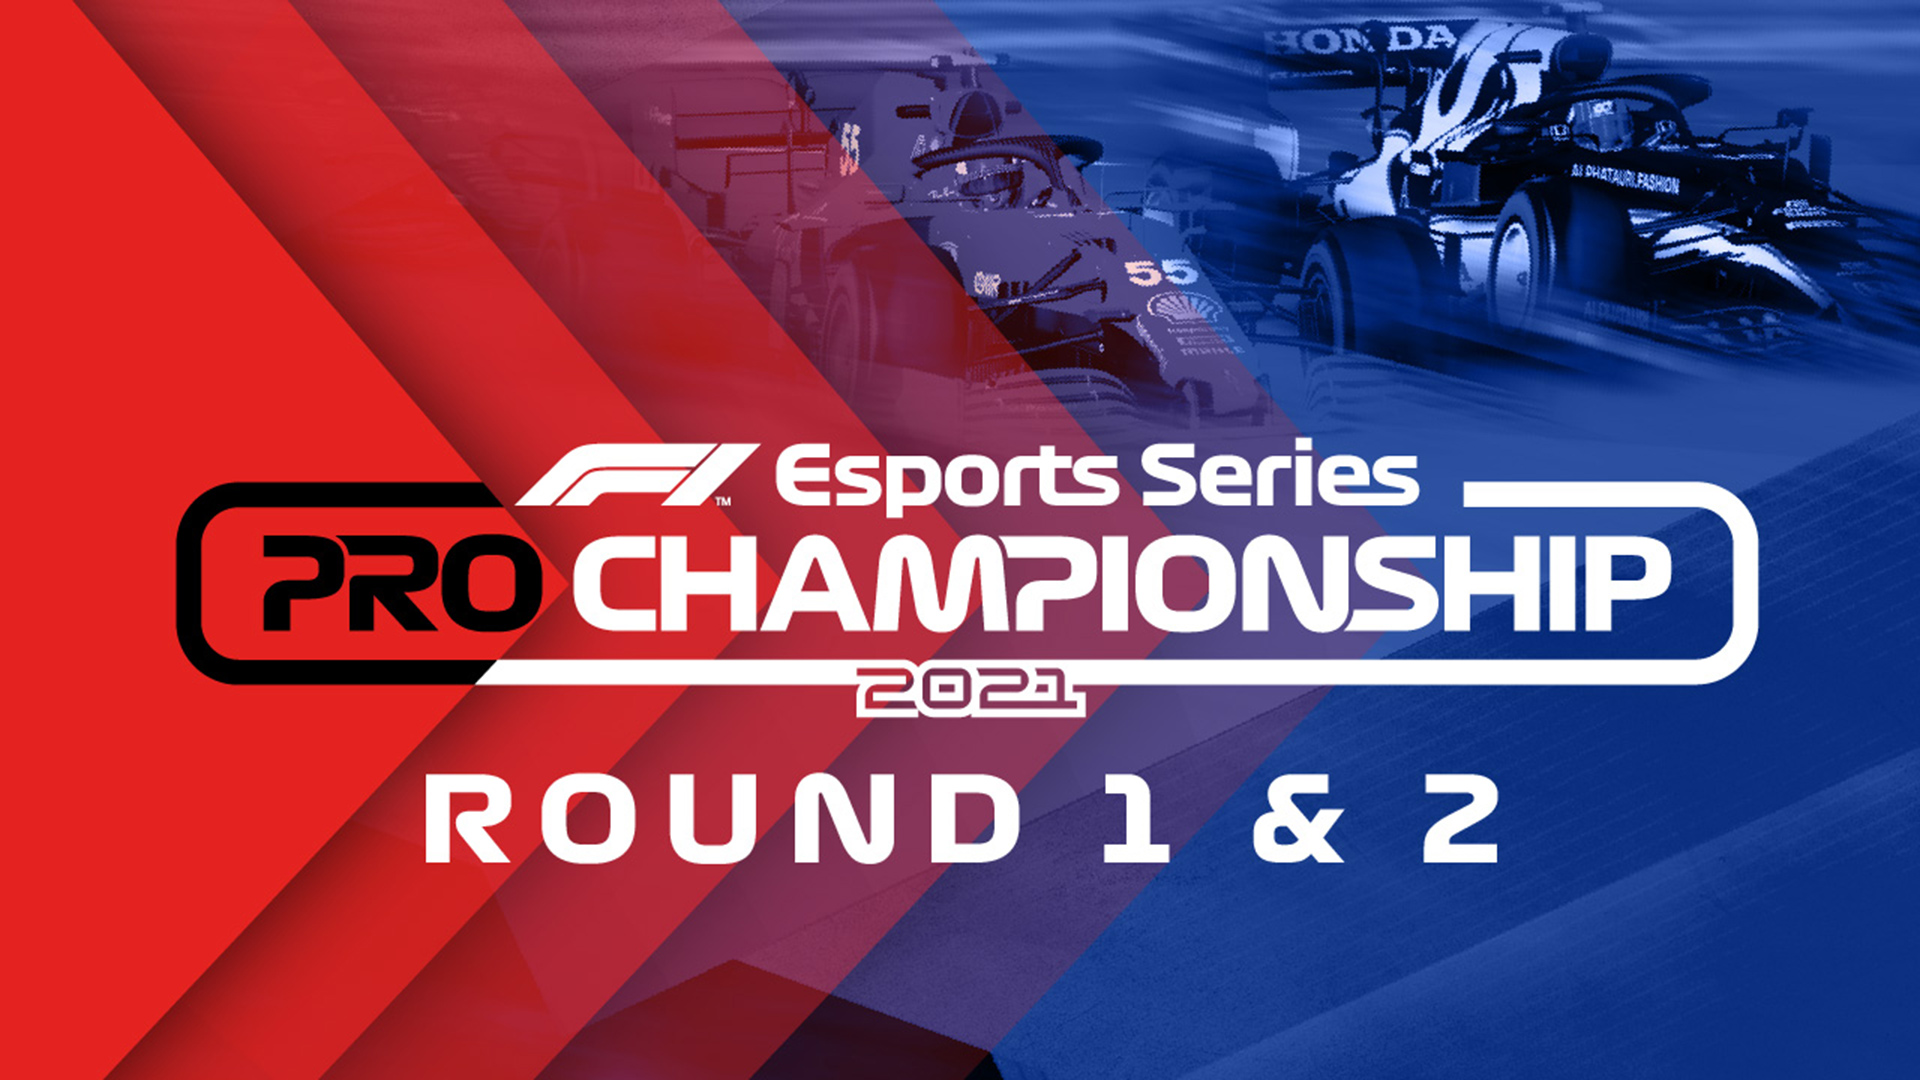 WATCH LIVE: Follow all the action from the first two rounds of the F1 Esports Pro Championship